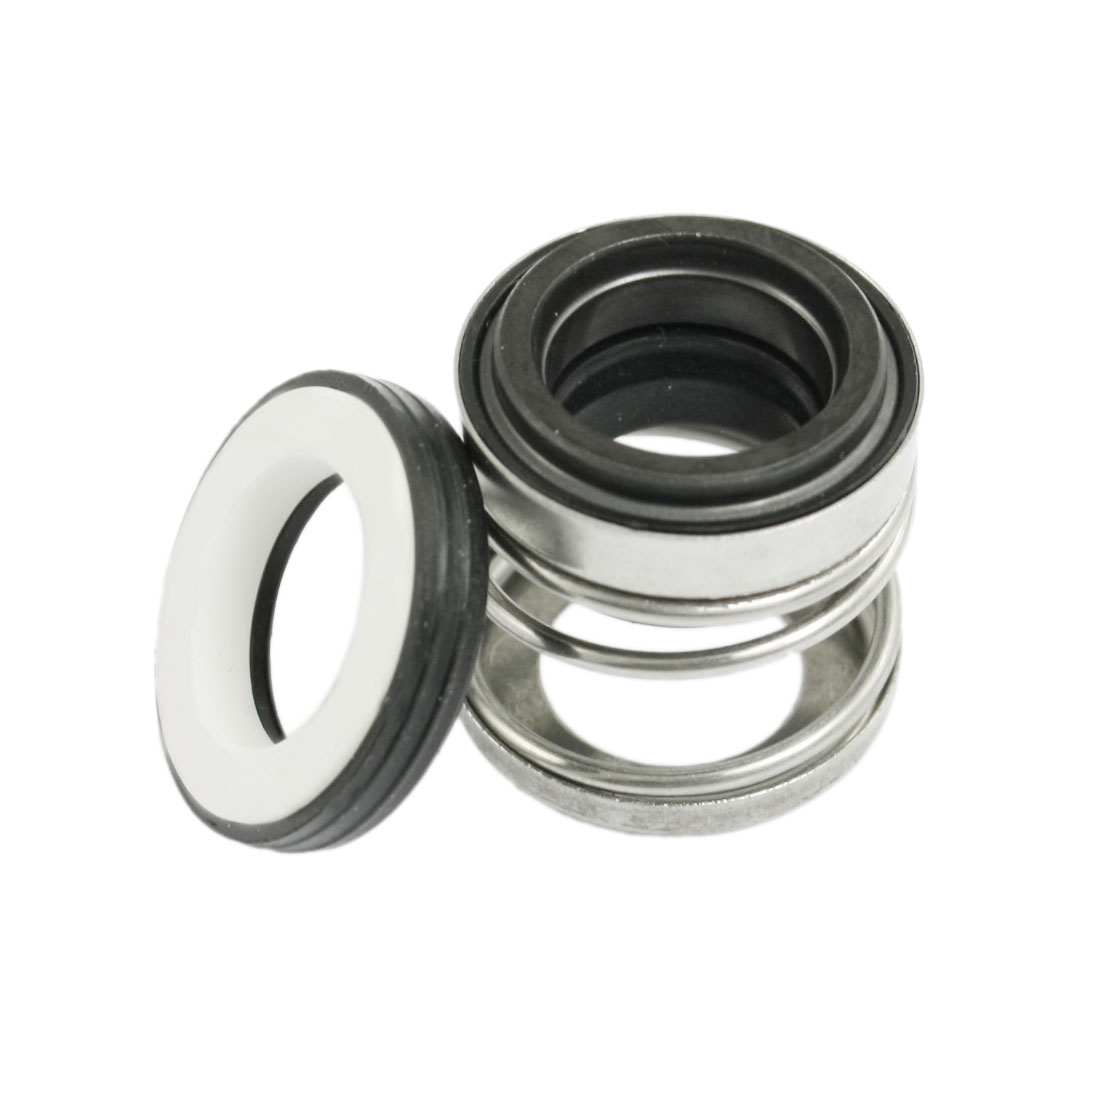 2 Pcs 108-14 14mm Inner Diameter Mechanical Seal for Pump Shaft